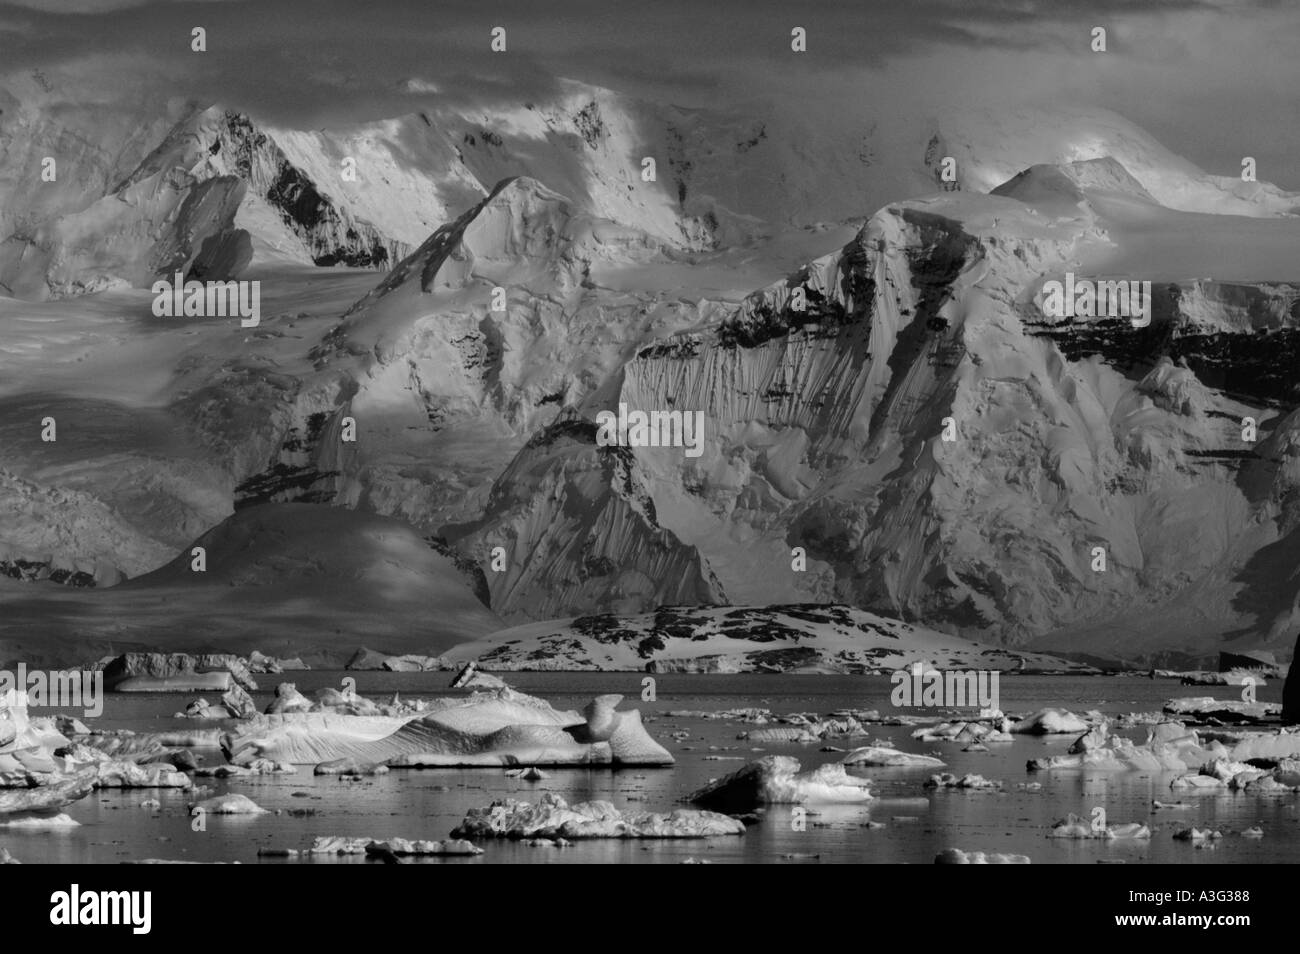 Ice age landscape, Antarctic Peninsula, Antarctica, Black and white - Stock Image